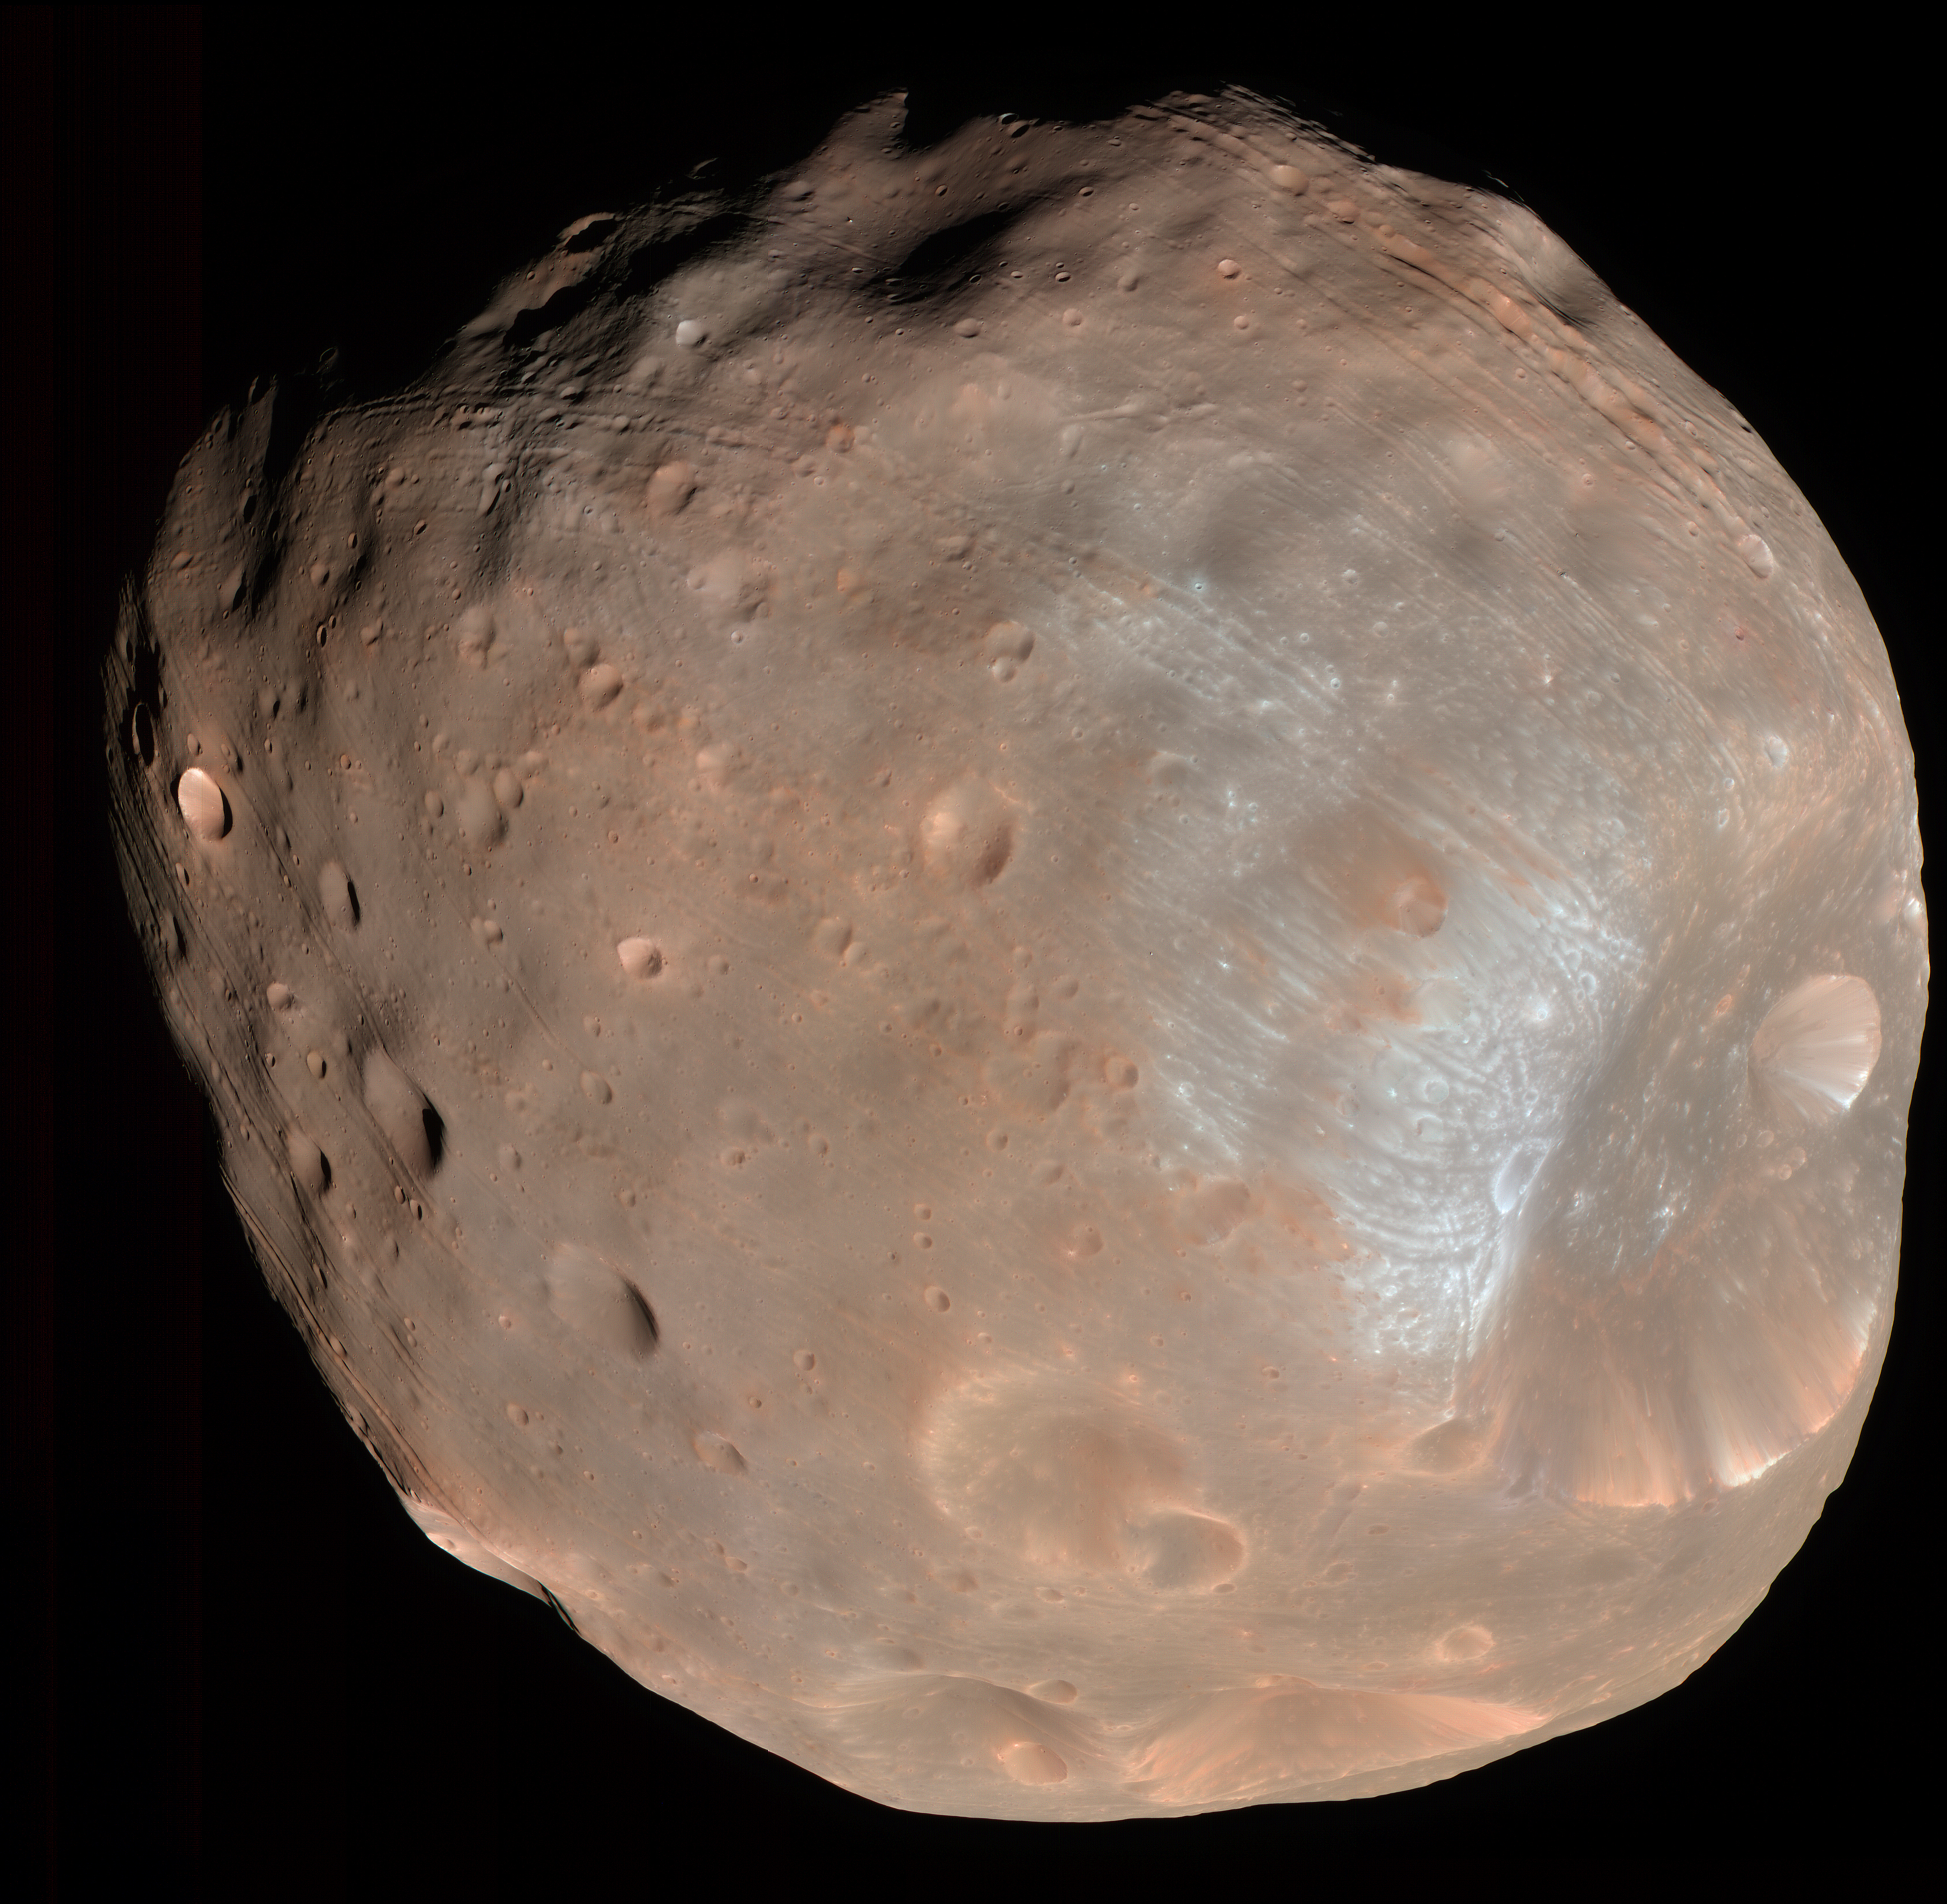 Manned Mars Plan: Phobos by 2033, Martian Surface by 2039?